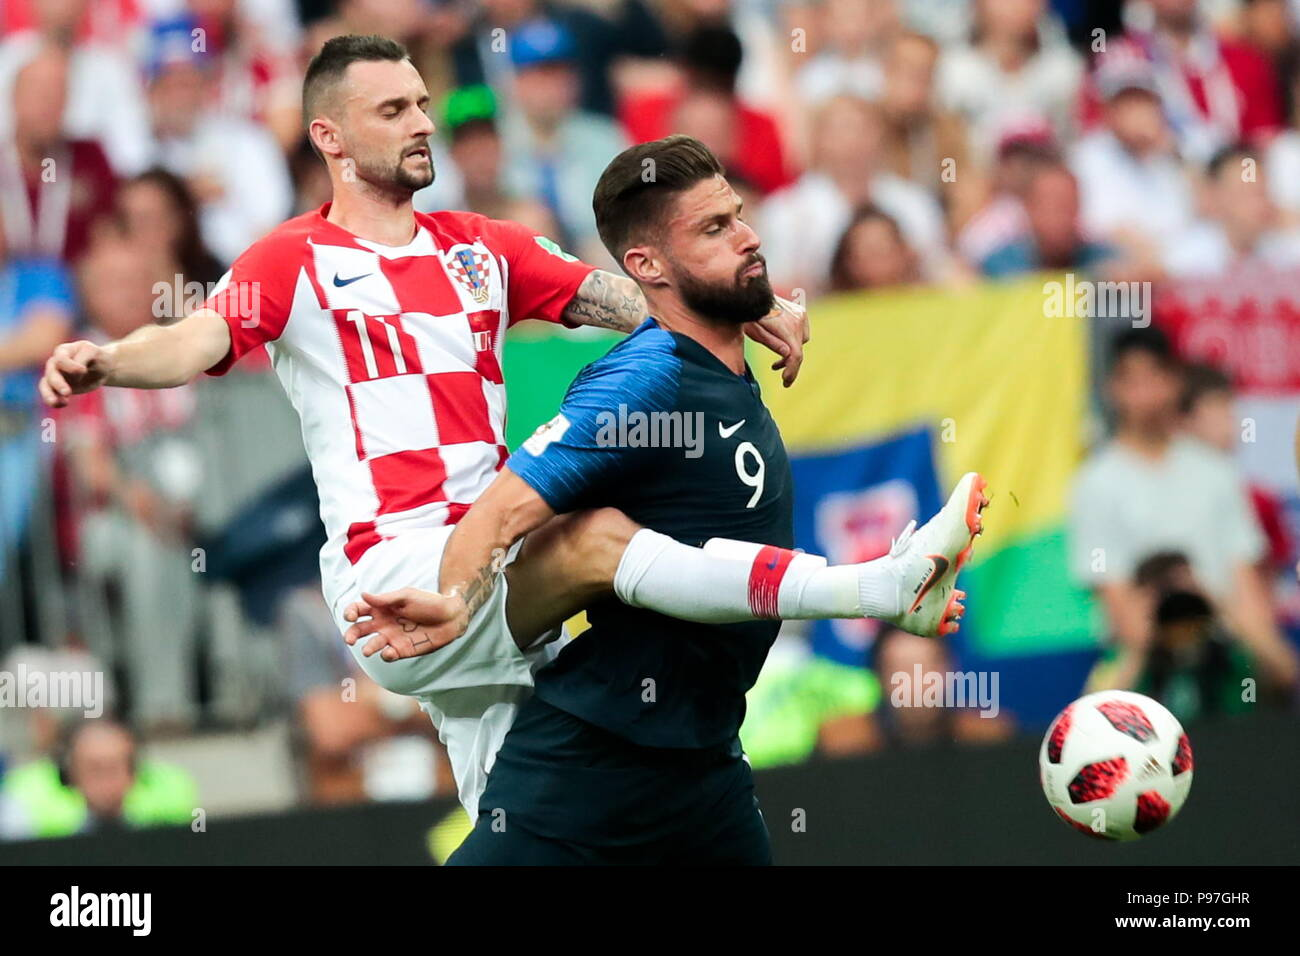 Moscow, Russia. 15th July, 2018. Denis Tyrin/TASS Credit: ITAR-TASS News Agency/Alamy Live News - Stock Image